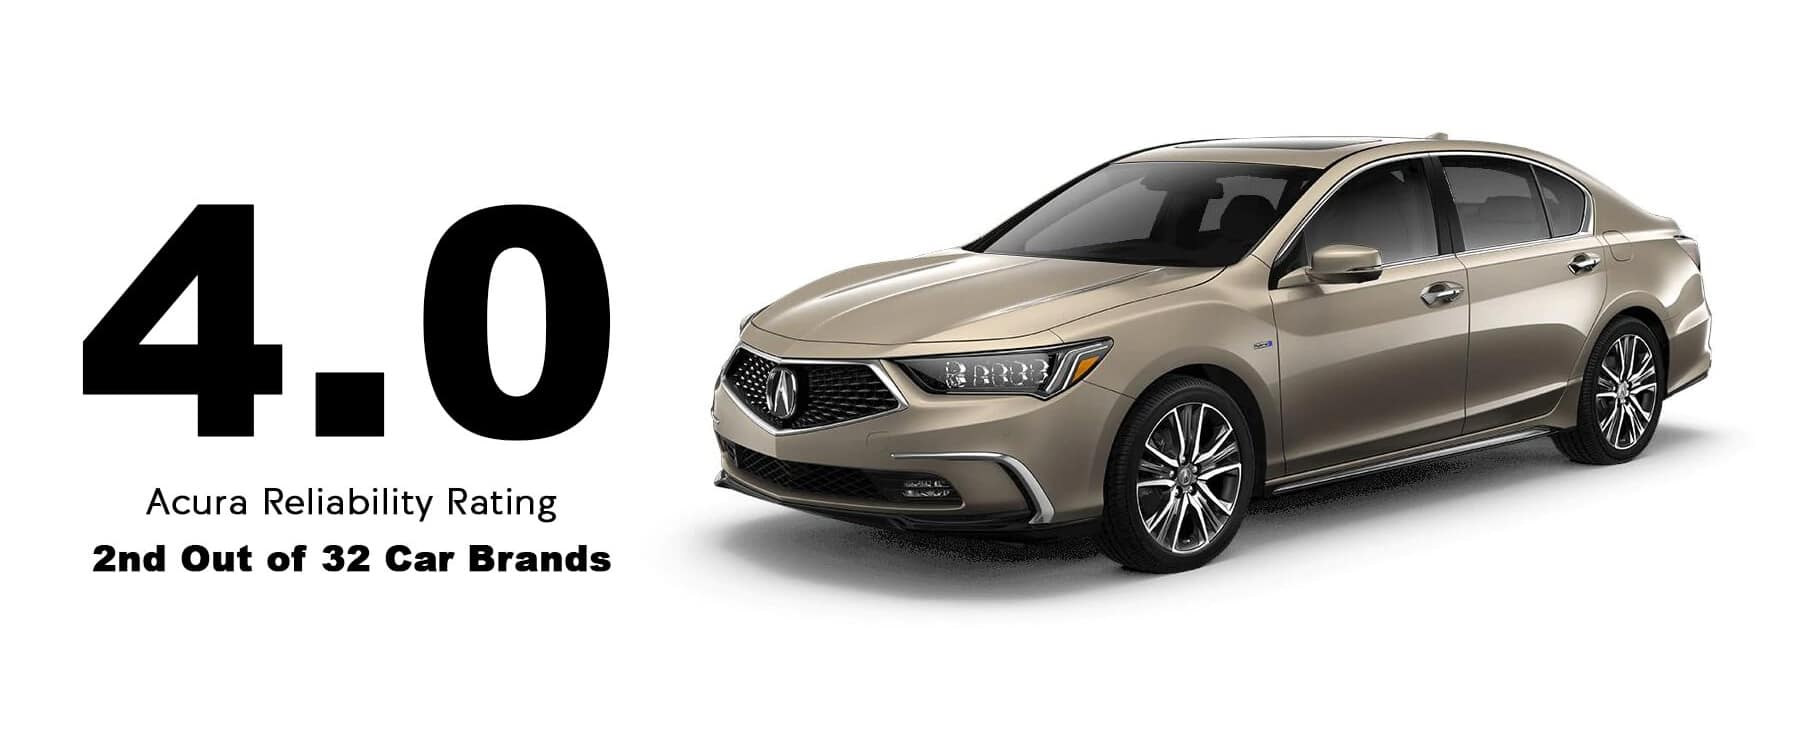 Acura Reliability Rating Score Graphic